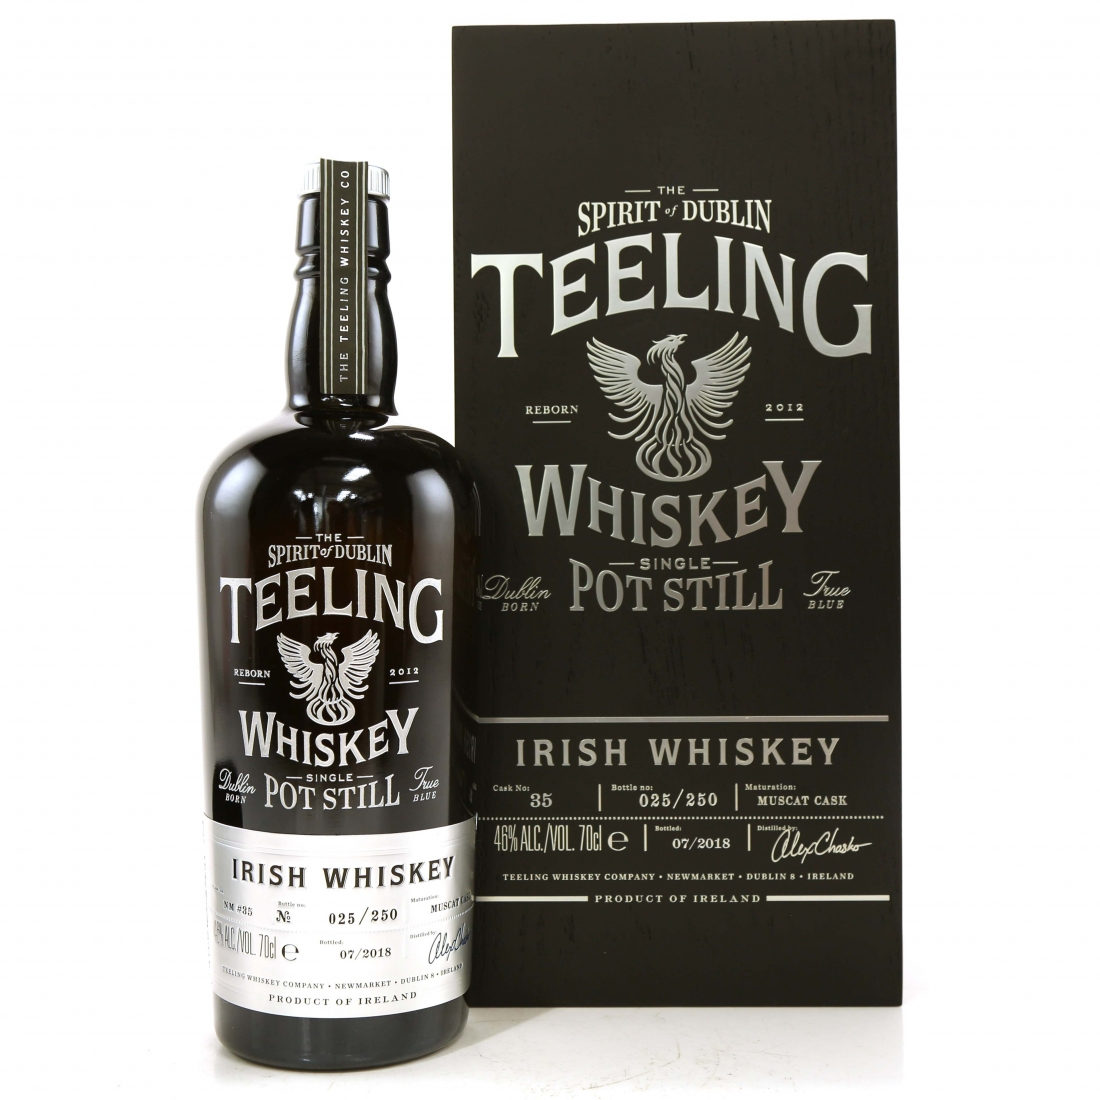 Teeling Celebratory Single Pot Still Whiskey / Bottle #025